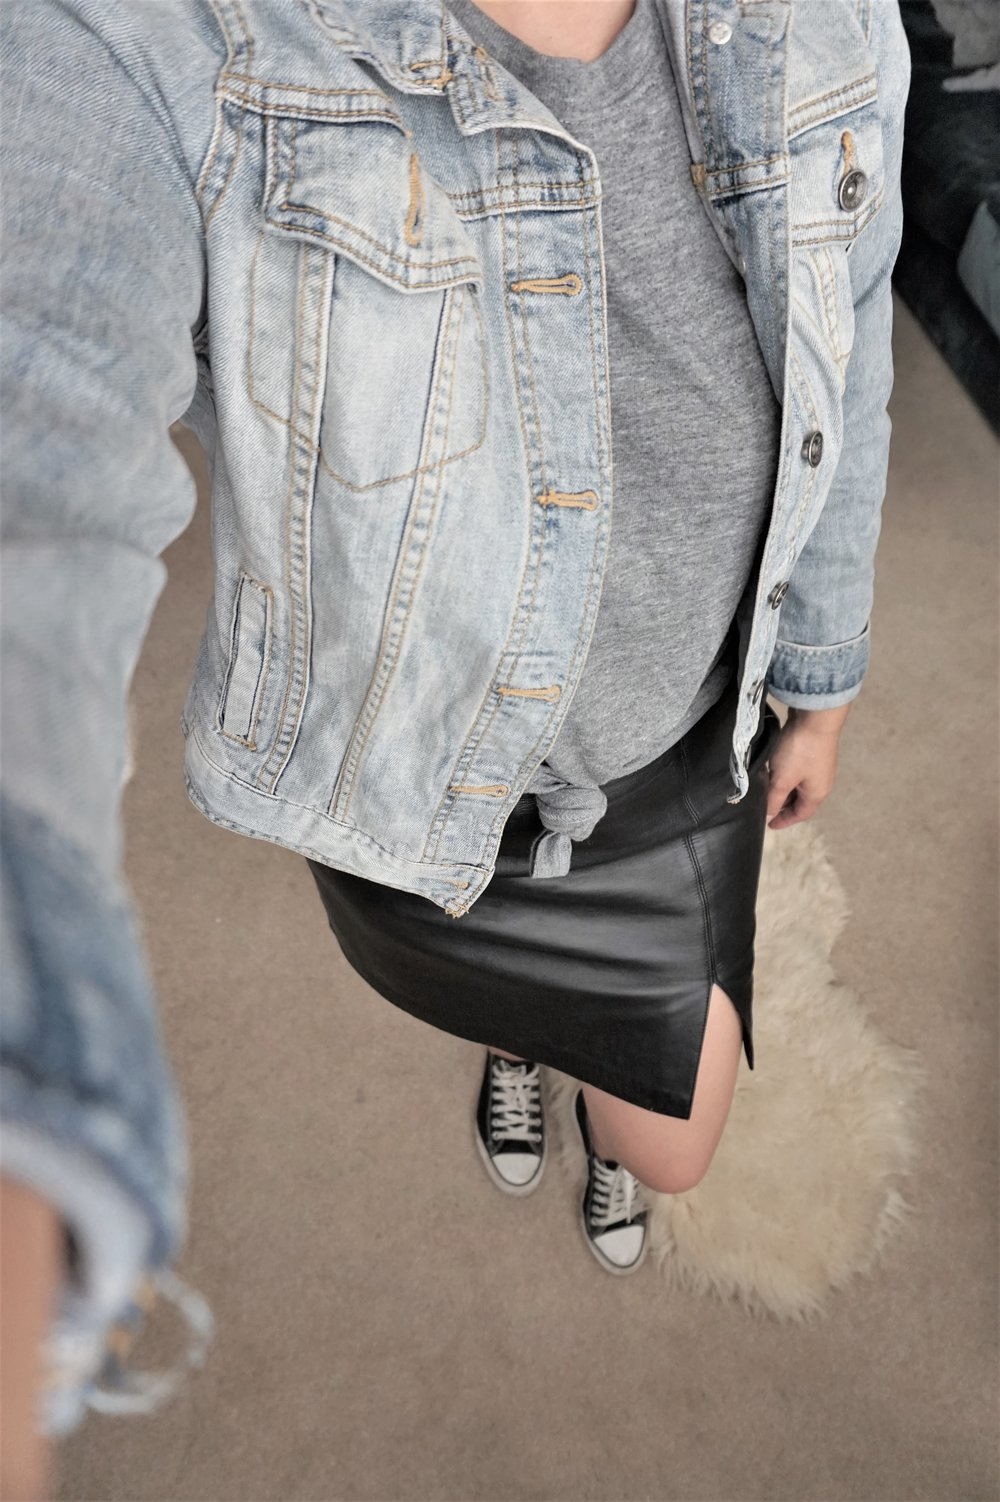 Denim Jacket: Thrifted Mossimo jacket $4.99 Leather skirt: Thrifted Alfani leather skirt $8.00 Shirt: Random shirt from my hubby's shirt collection Shoes: Gifted